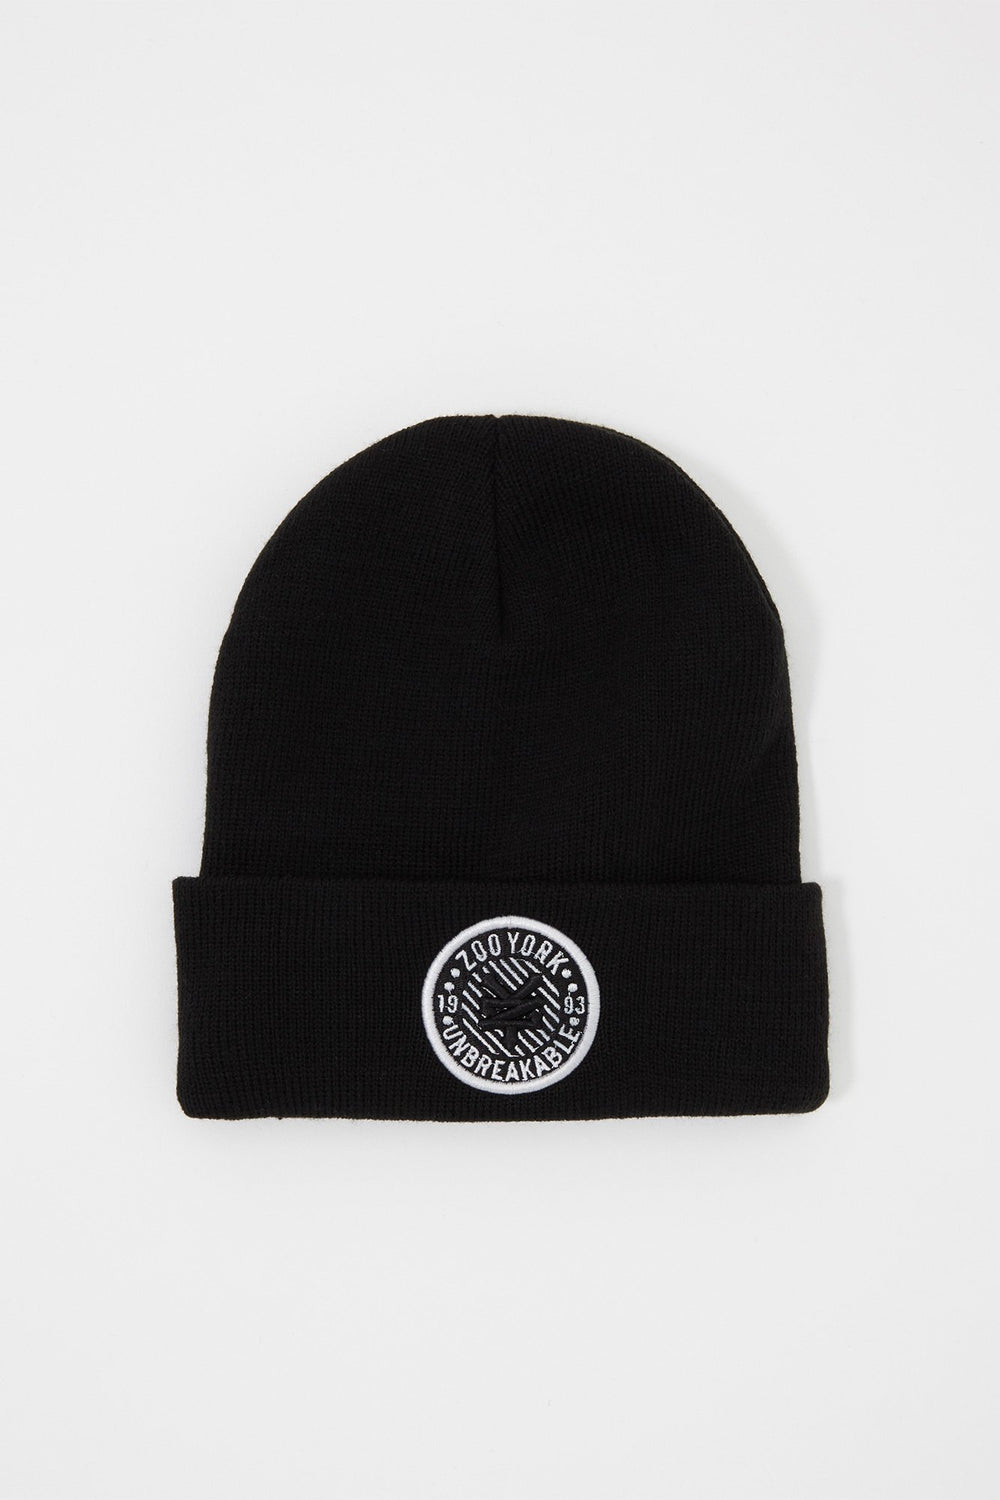 Zoo York Unbreakable Boys Beanie Black